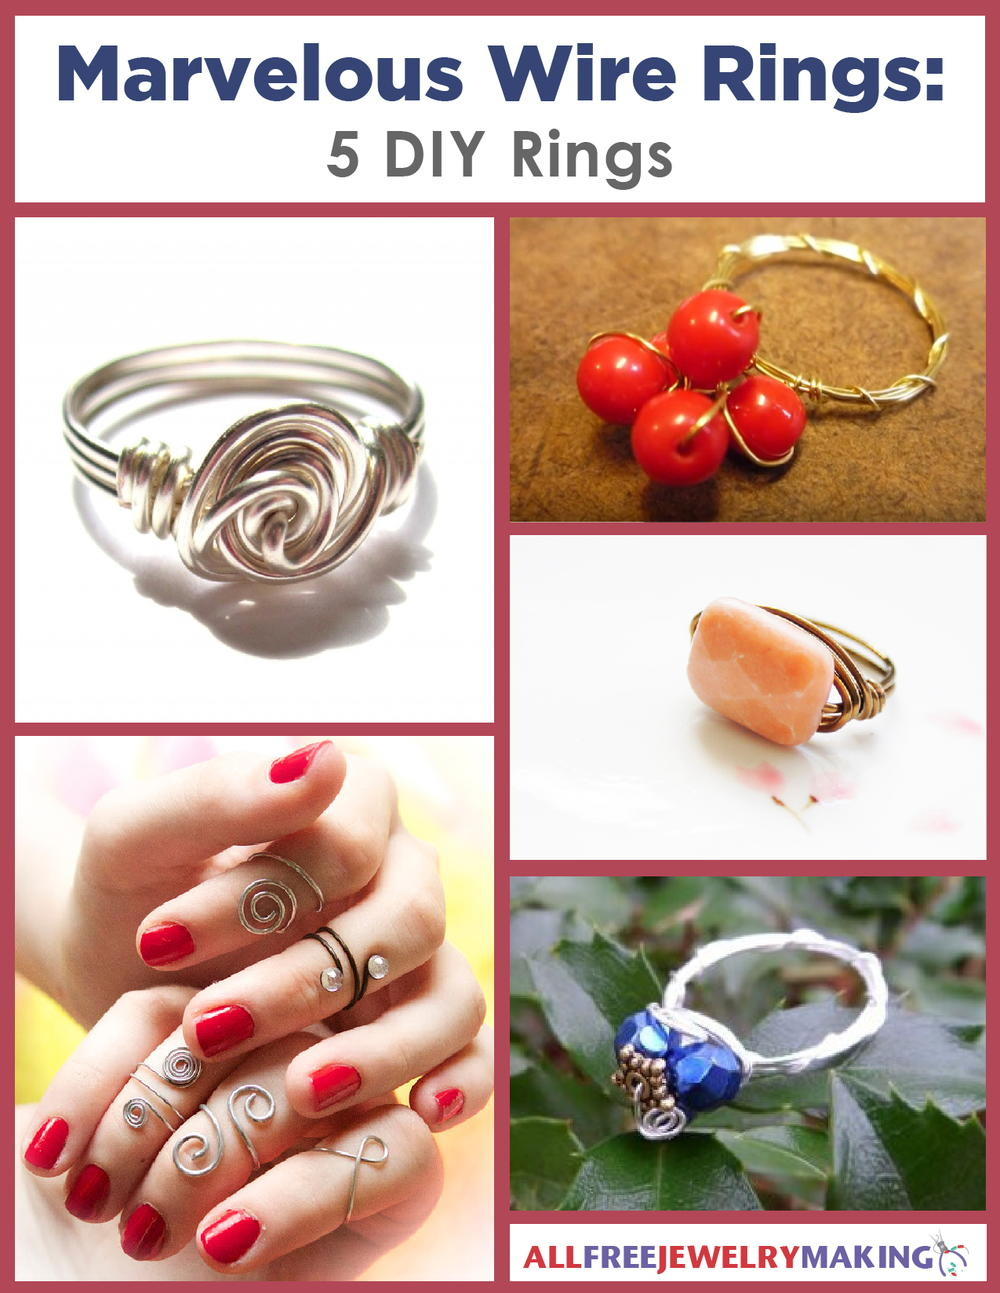 Marvelous Wire Rings: 5 DIY Rings | AllFreeJewelryMaking.com